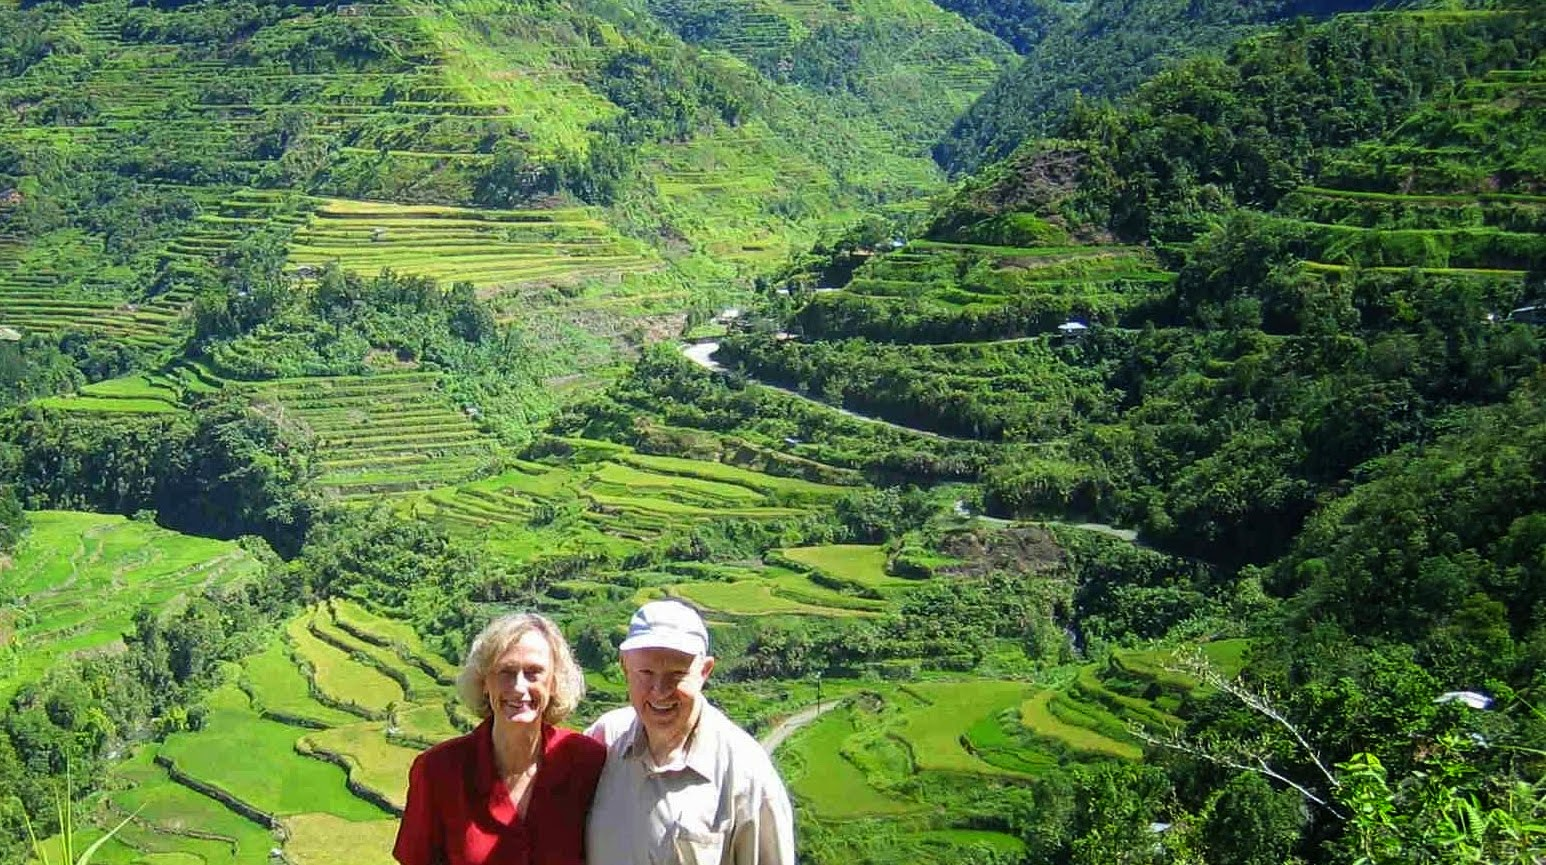 The Banuae Rice Terraces, Philippines